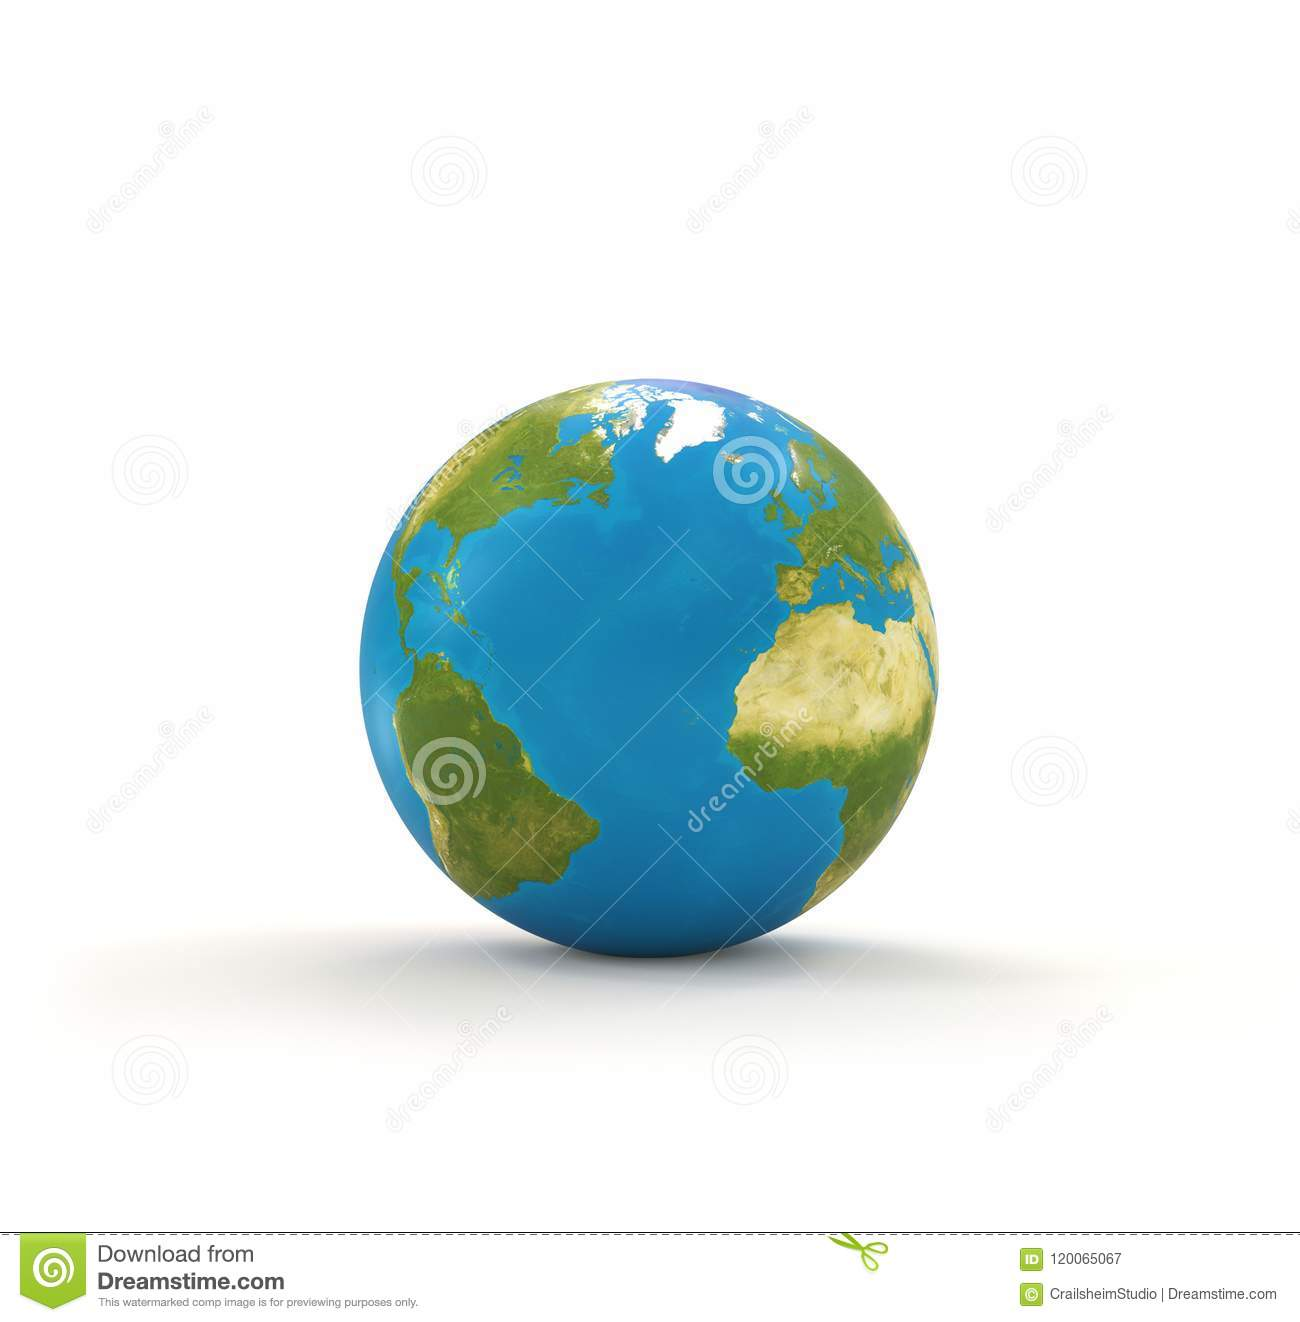 World map planet earth globe 3d illustration stock illustration world map planet earth globe 3d illustration international wide gumiabroncs Image collections